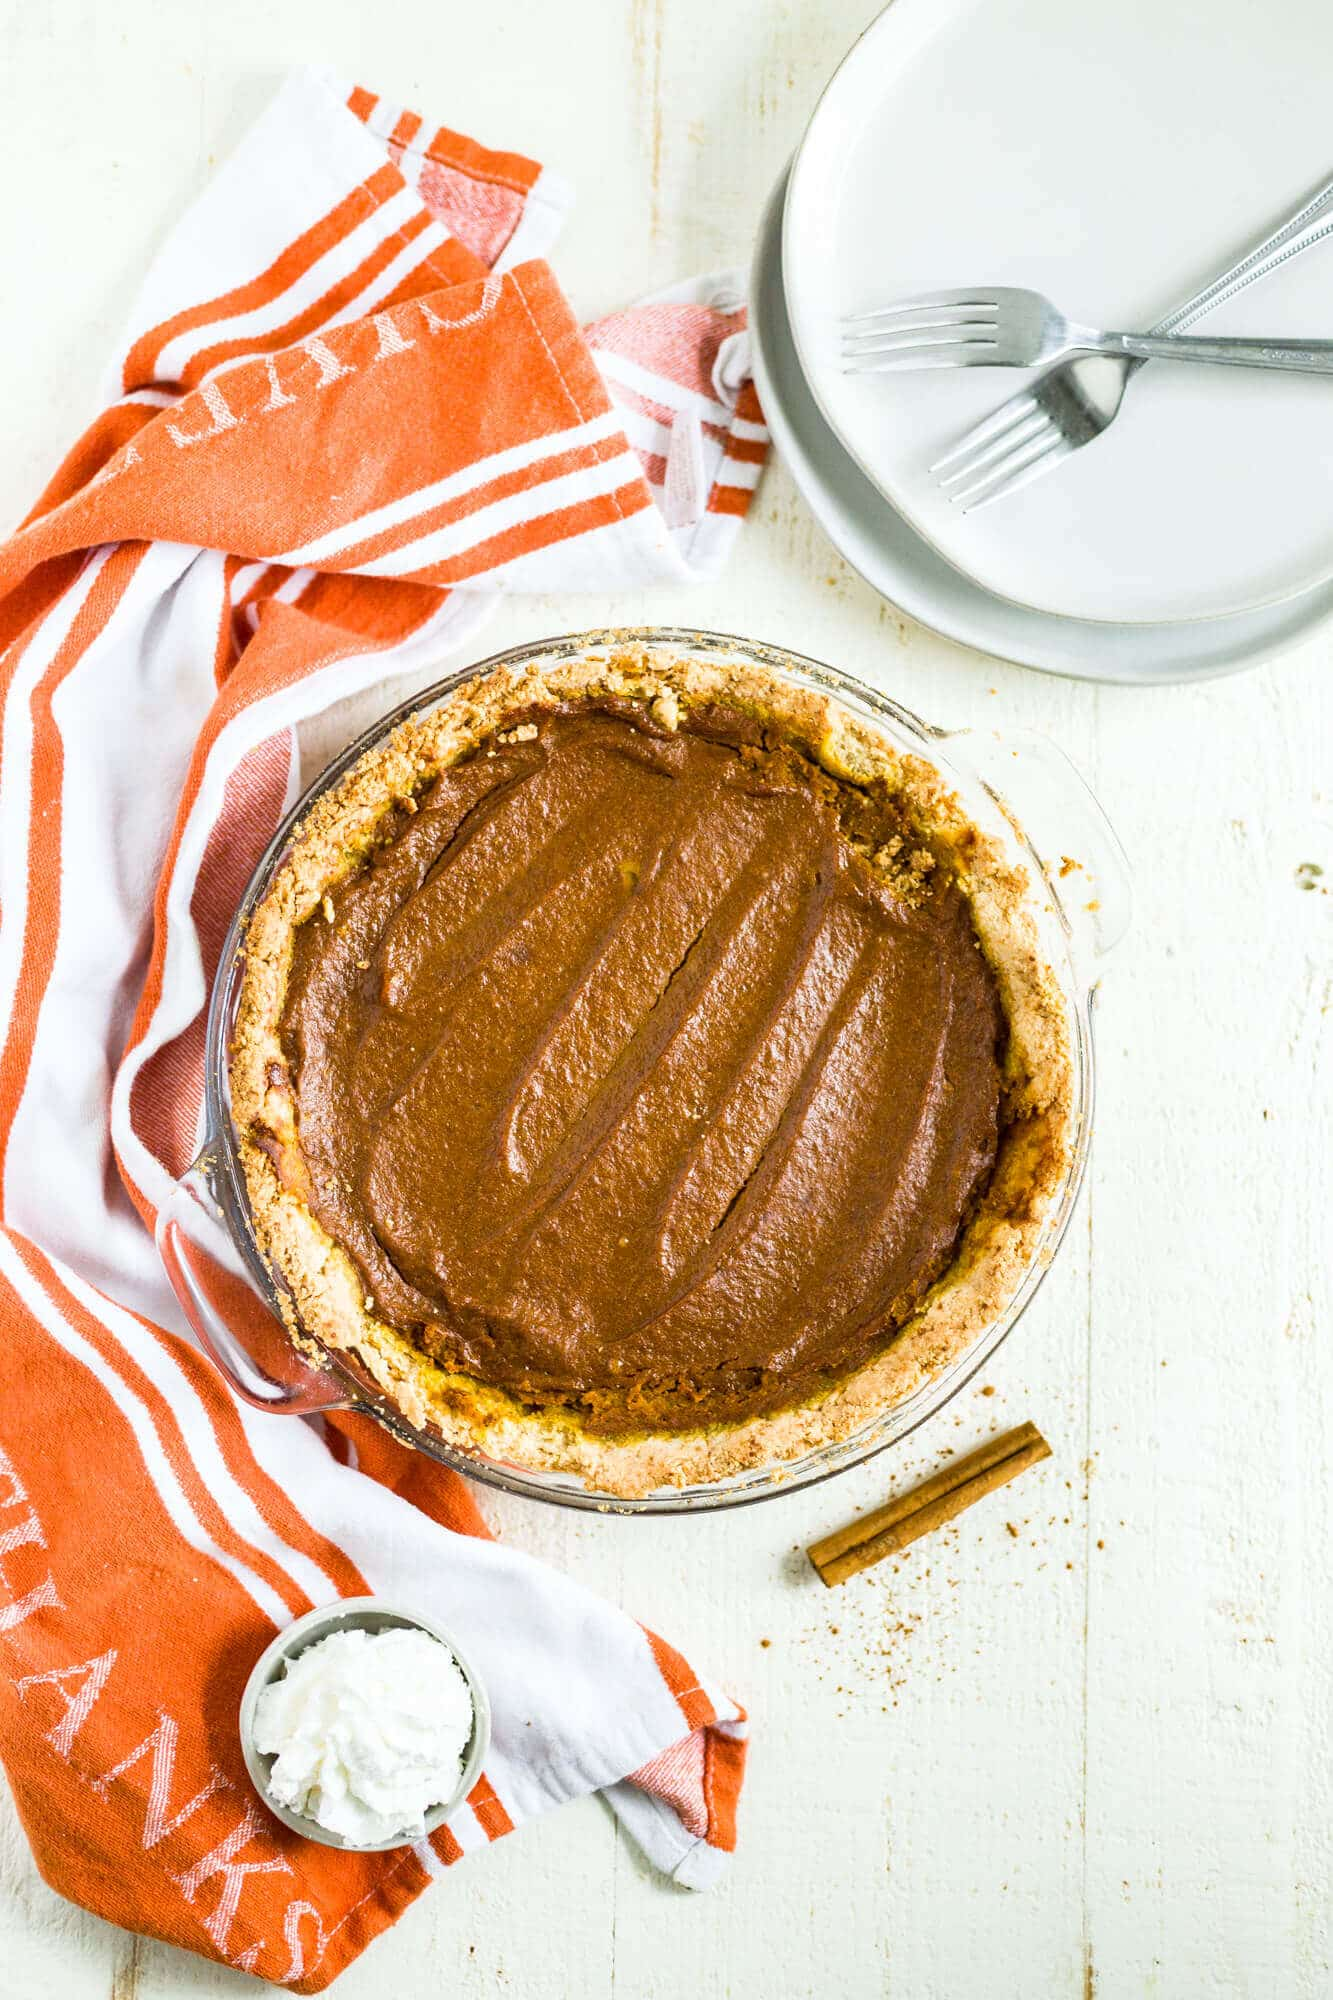 gluten free dairy free pumpkin pie in a glass pie dish with a few forks and orange and white dish towel